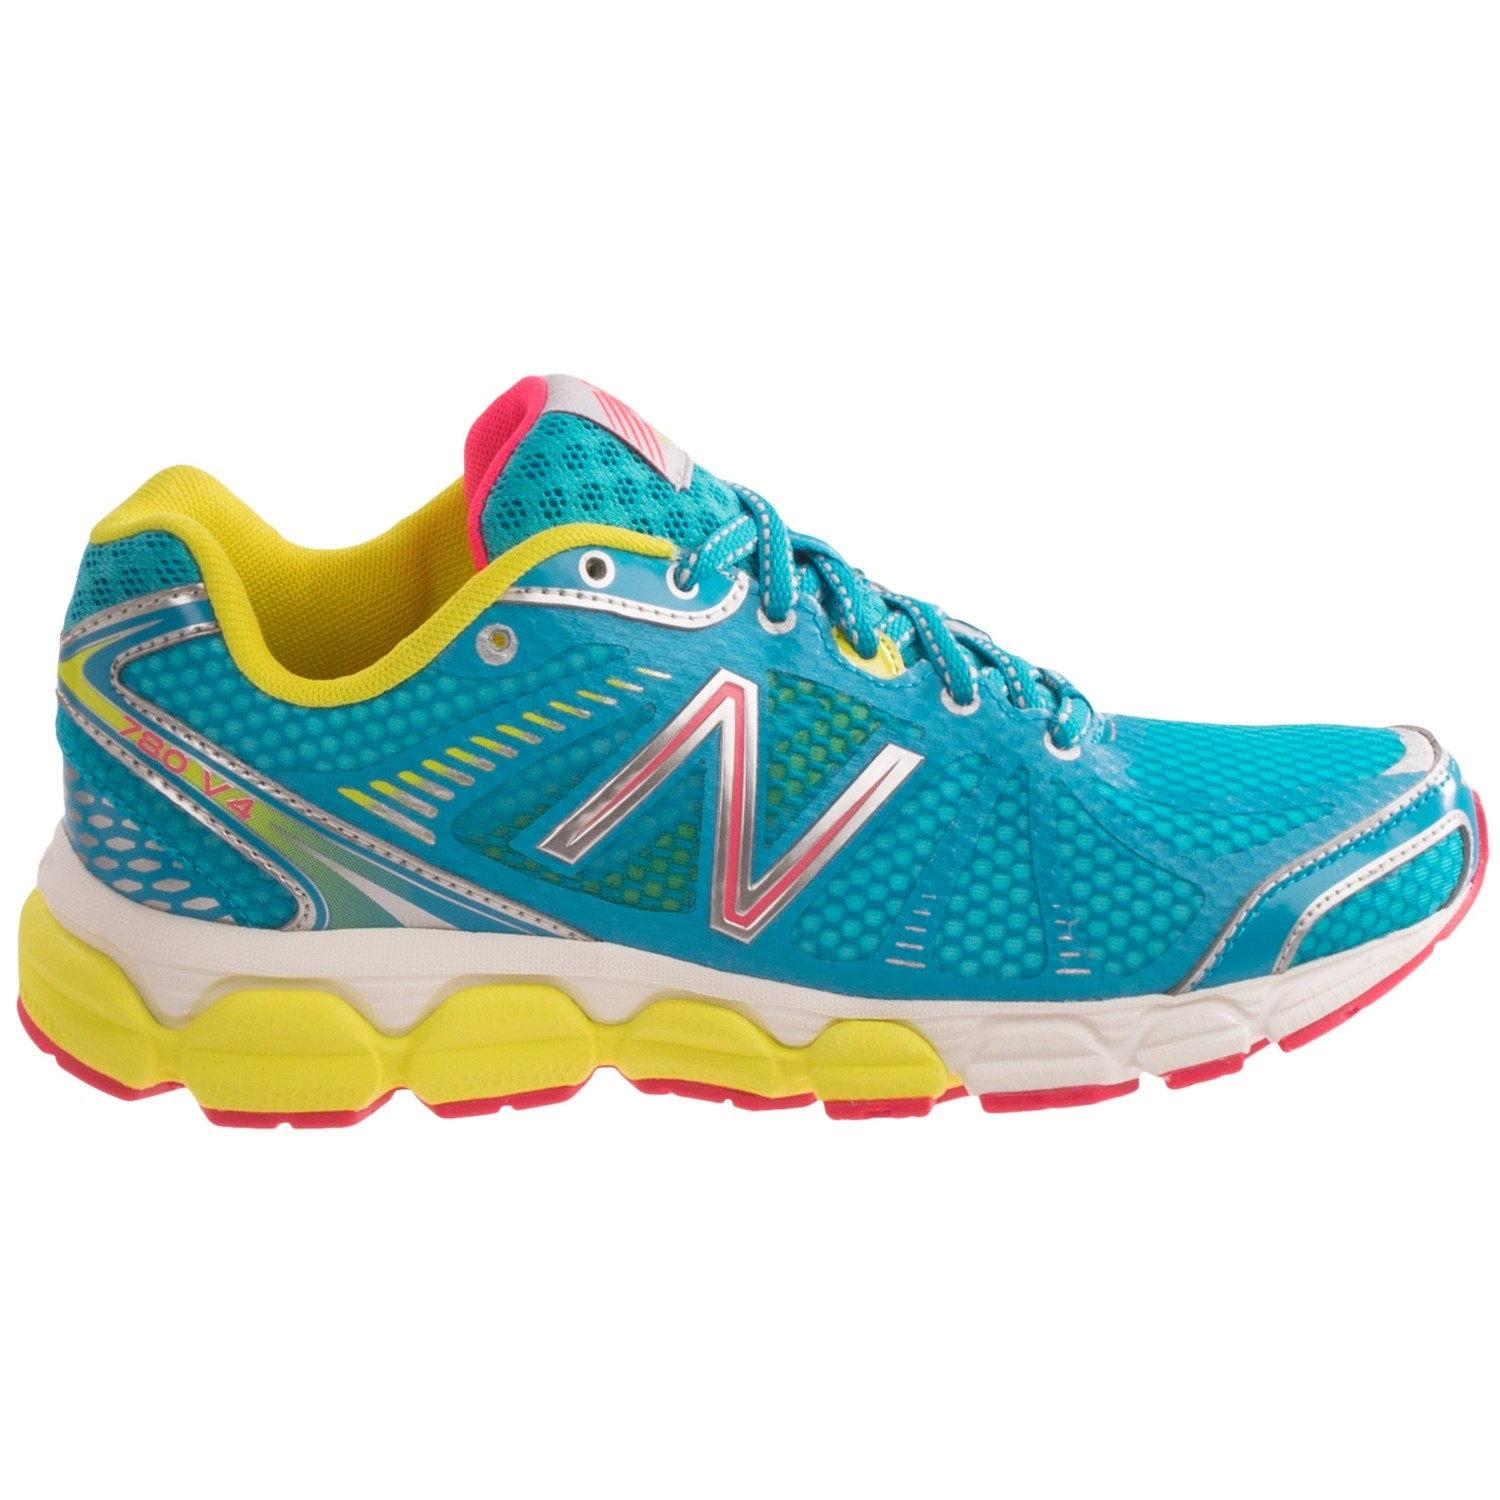 new balance 780v4 running shoes for 8422h save 41